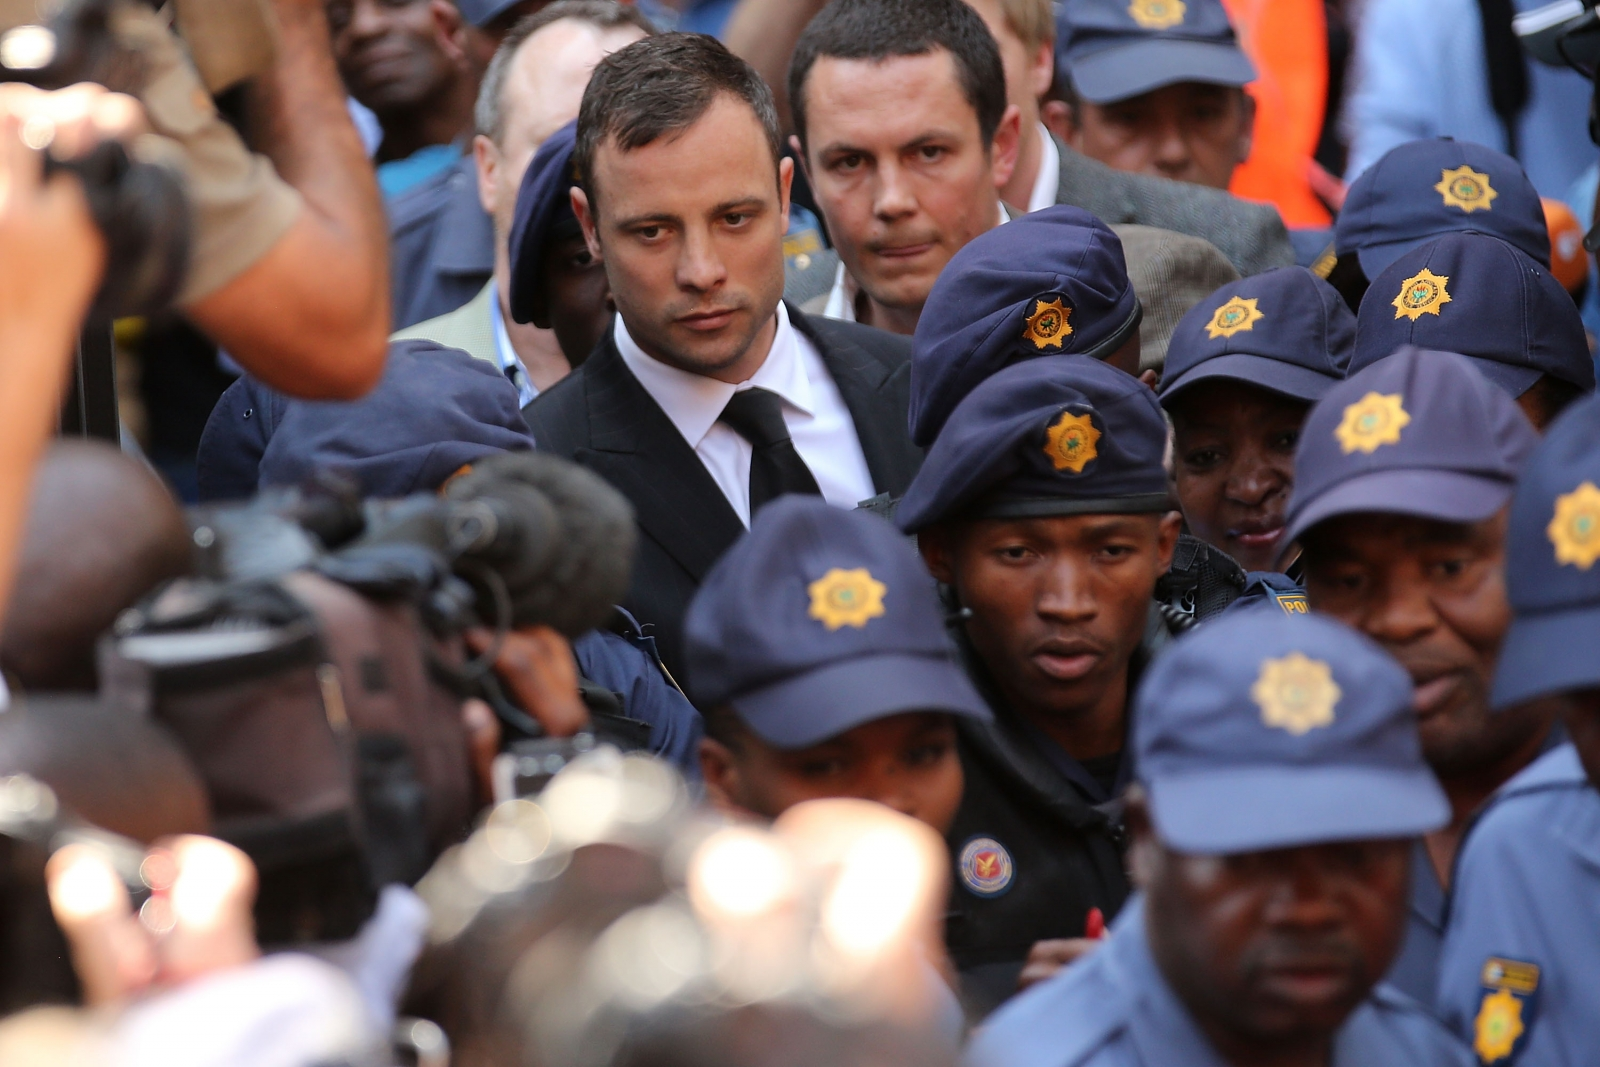 The date of sentencing for Oscar Pistorius for killing Reeva Steenkamp has been announced